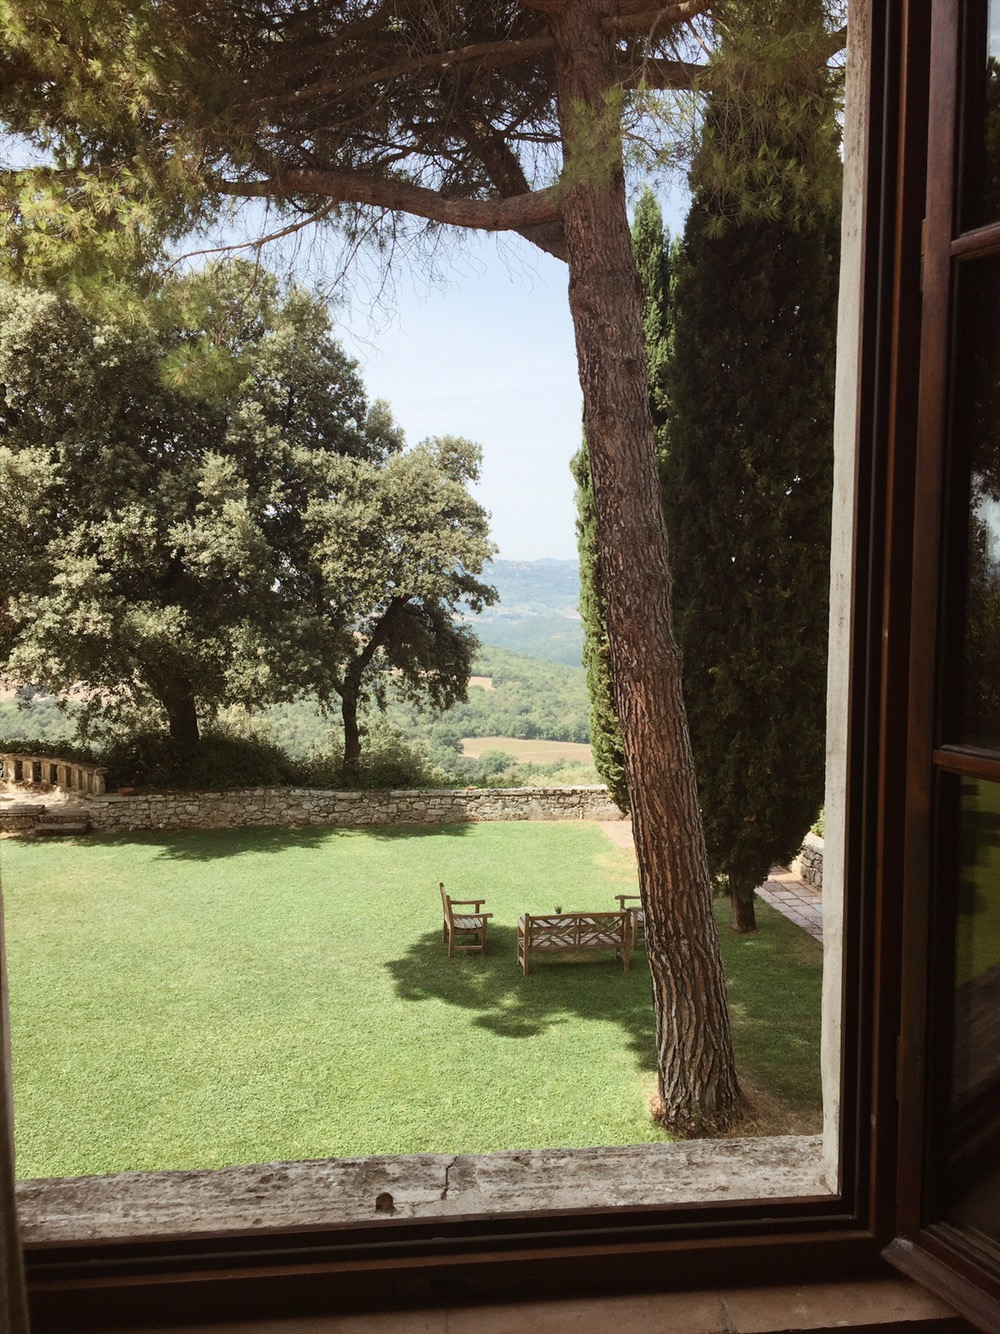 View from the house at Borgo Pignano